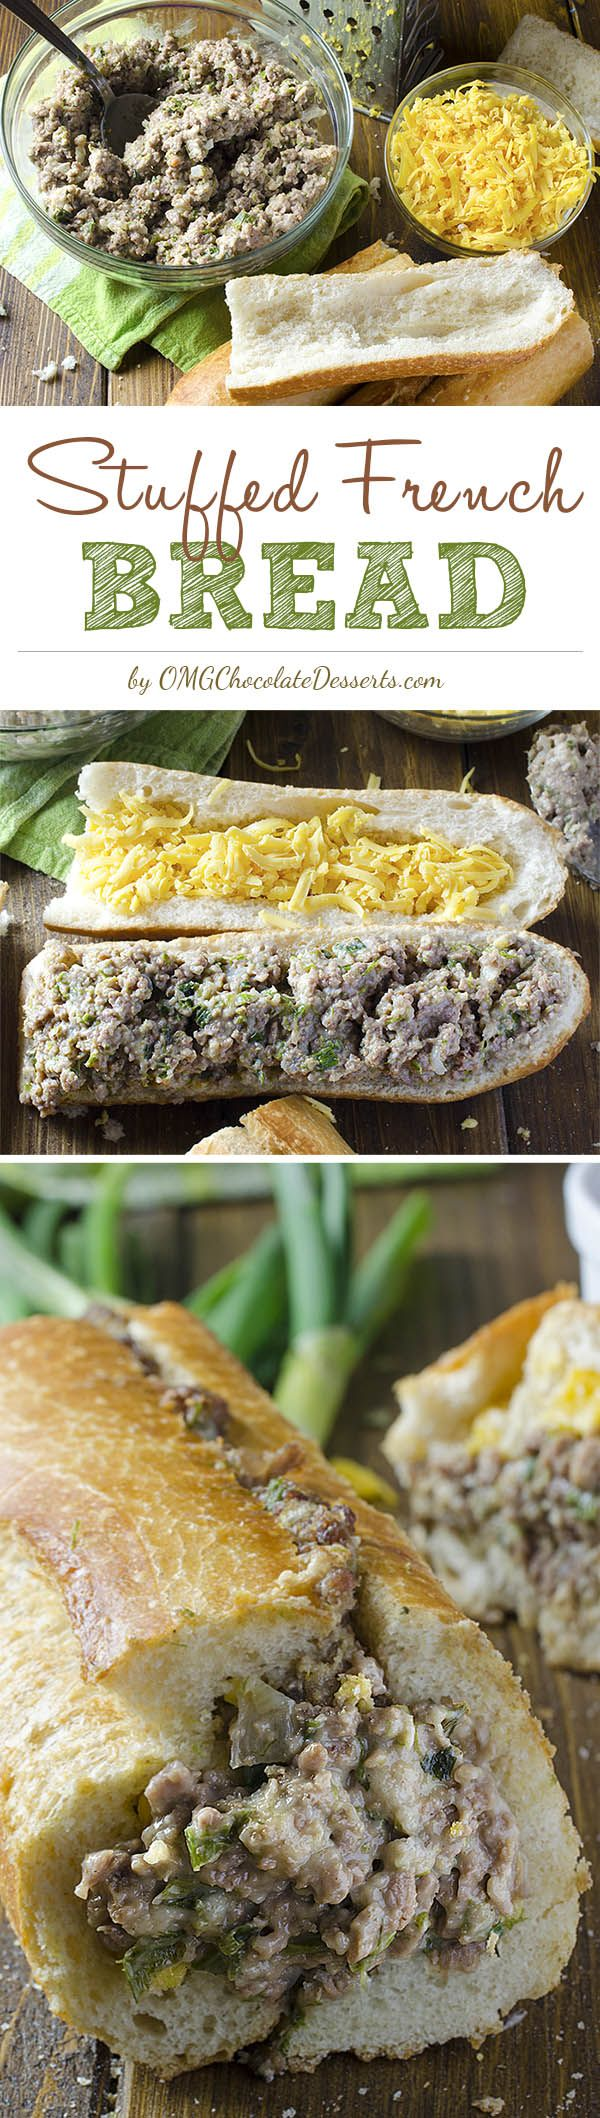 In only half an hour, prepare a quick and tasty dinner for your family! Stuffed French Bread is a quick and a simple recipe for a crispy loaf of bread stuffed with cheesy minced beef